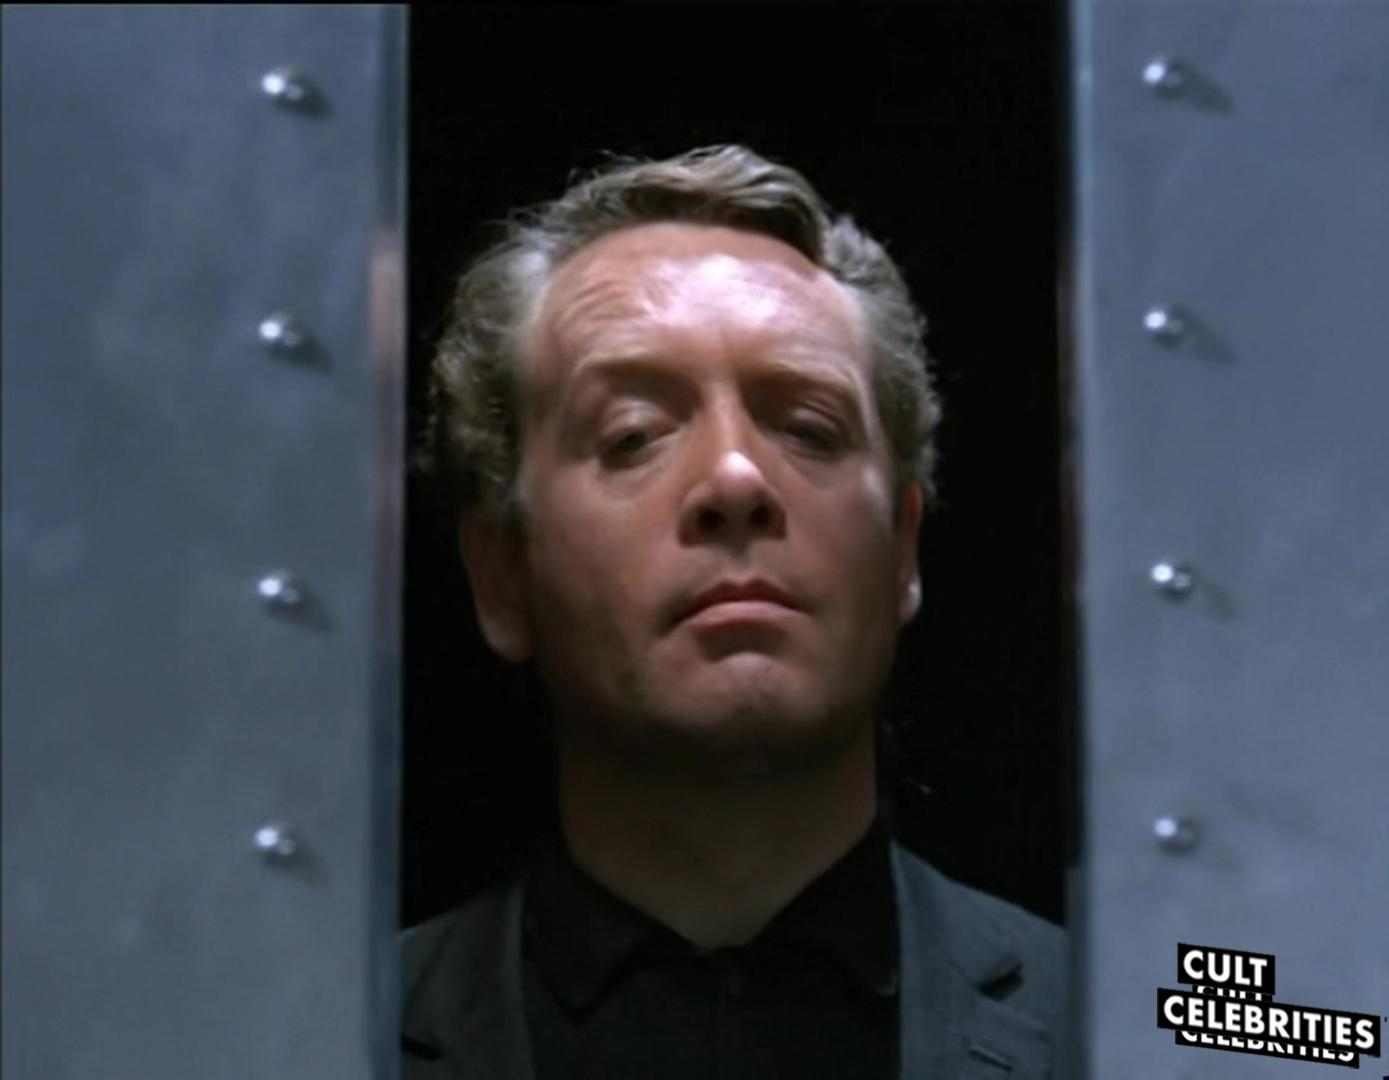 Patrick McGoohan in The Prisoner S01E16 - Fall Out